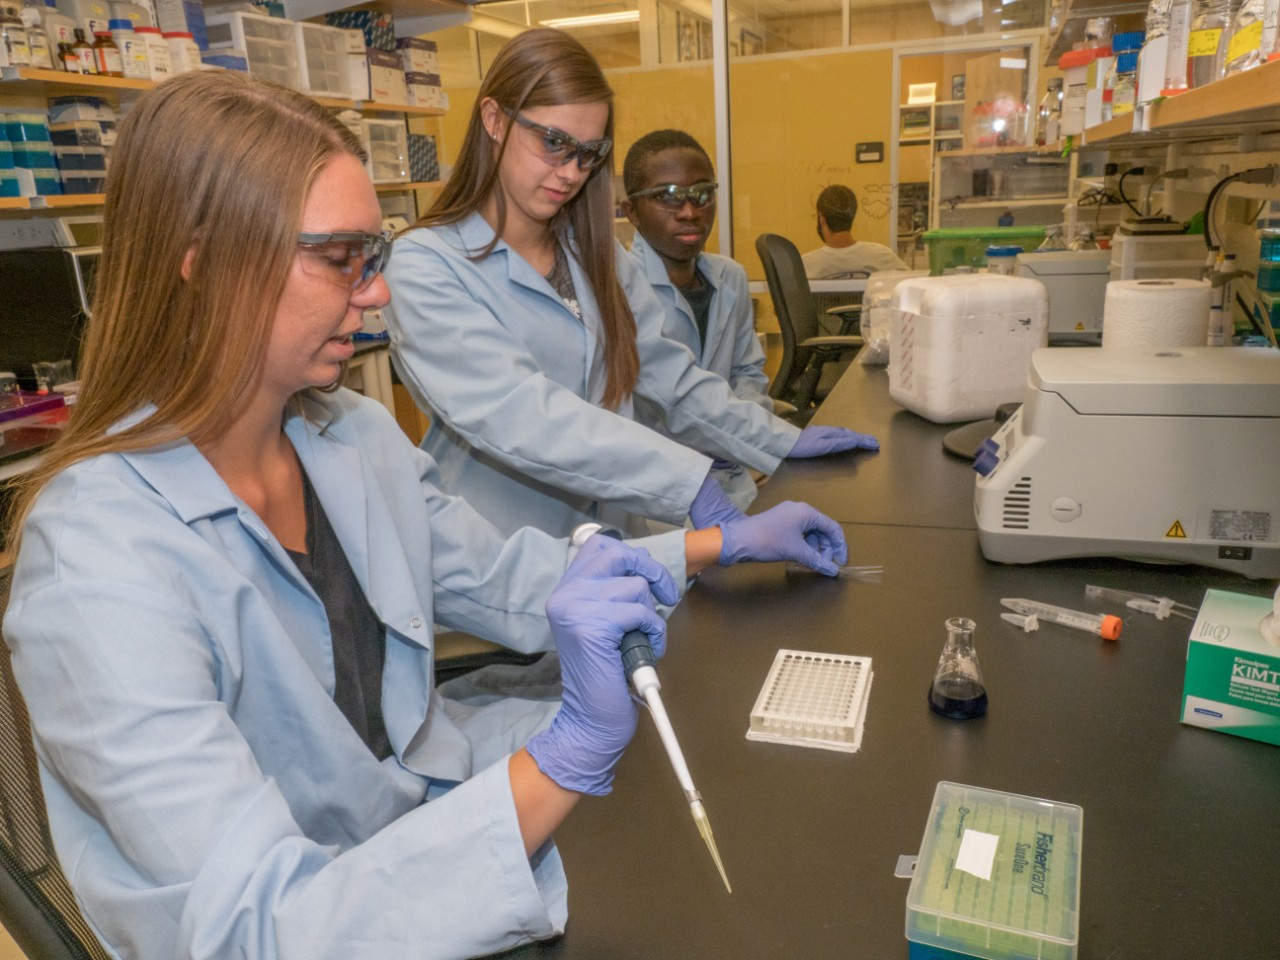 Students in labcoats and safety glasses work at a lab bench with pipettes and other equipment.